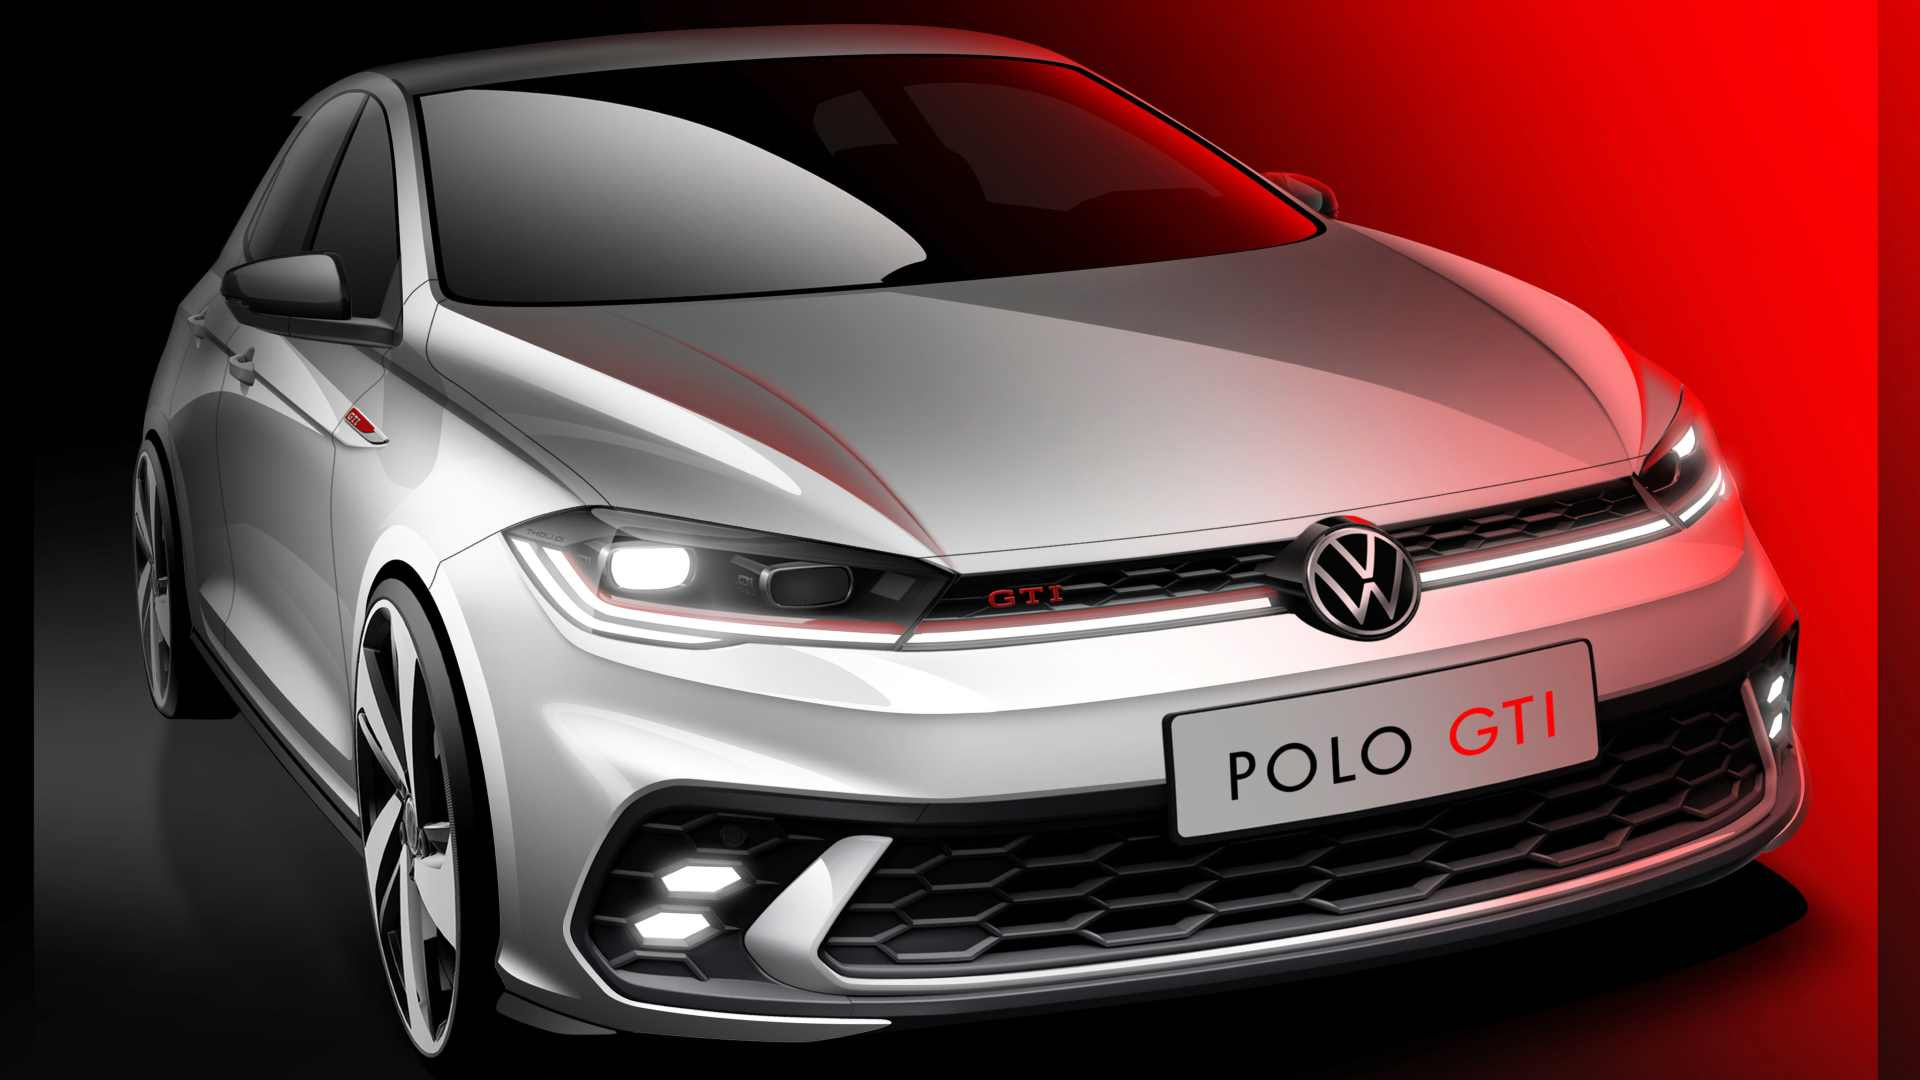 This is the first major update for the current-gen Volkswagen Polo GTI since its debut in 2018. Image: Volkswagen